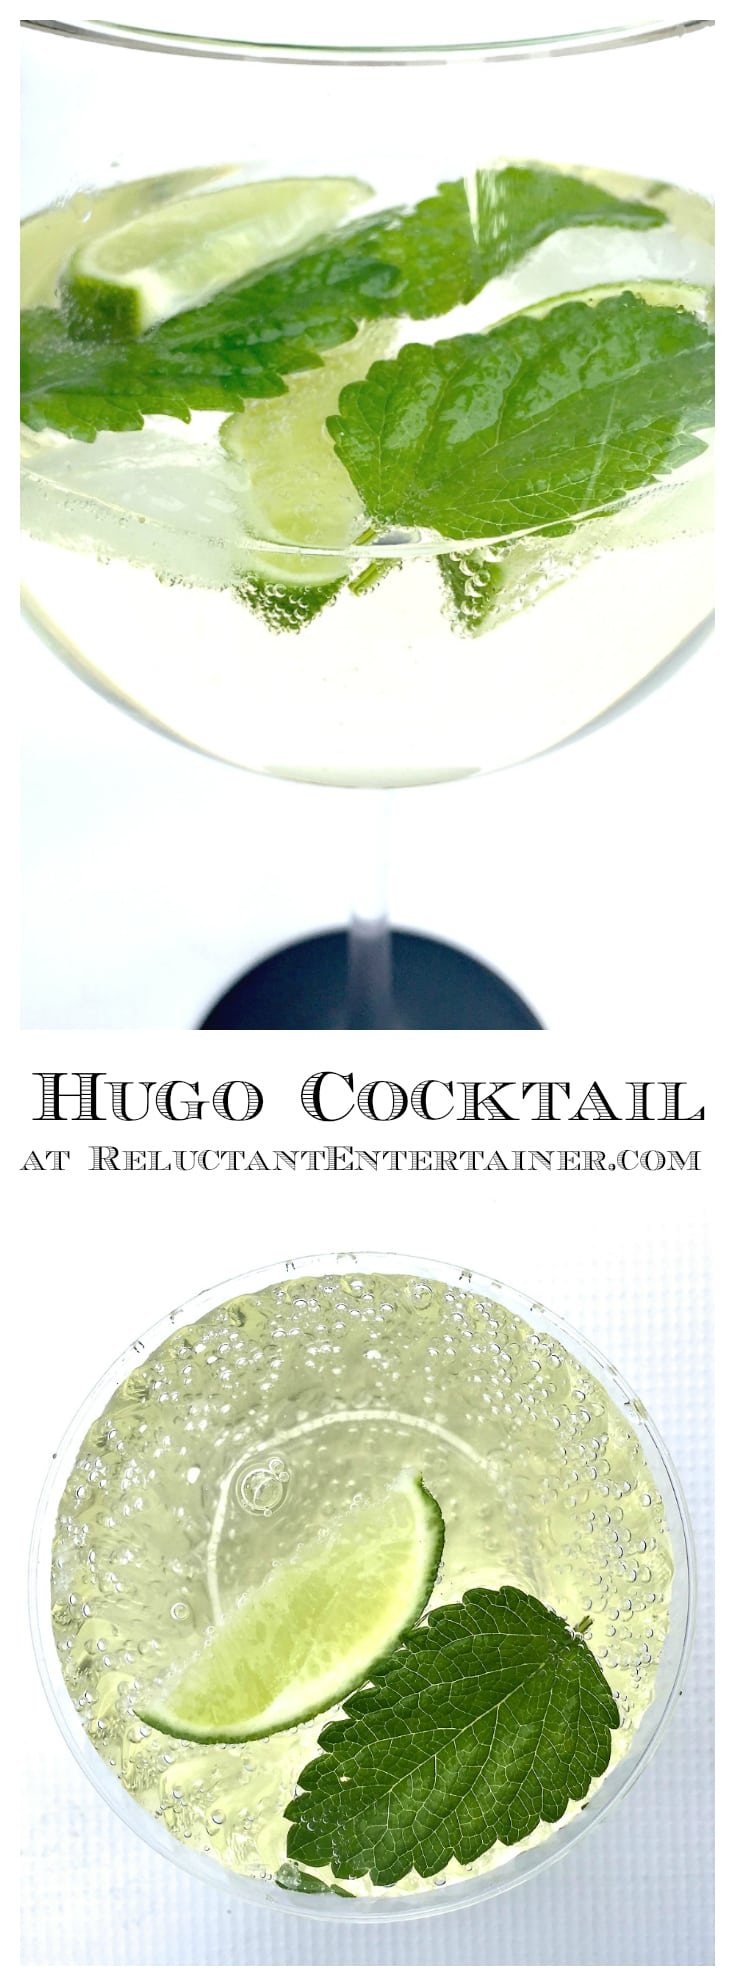 Hugo Cocktail Recipe - the perfect celebration drink!